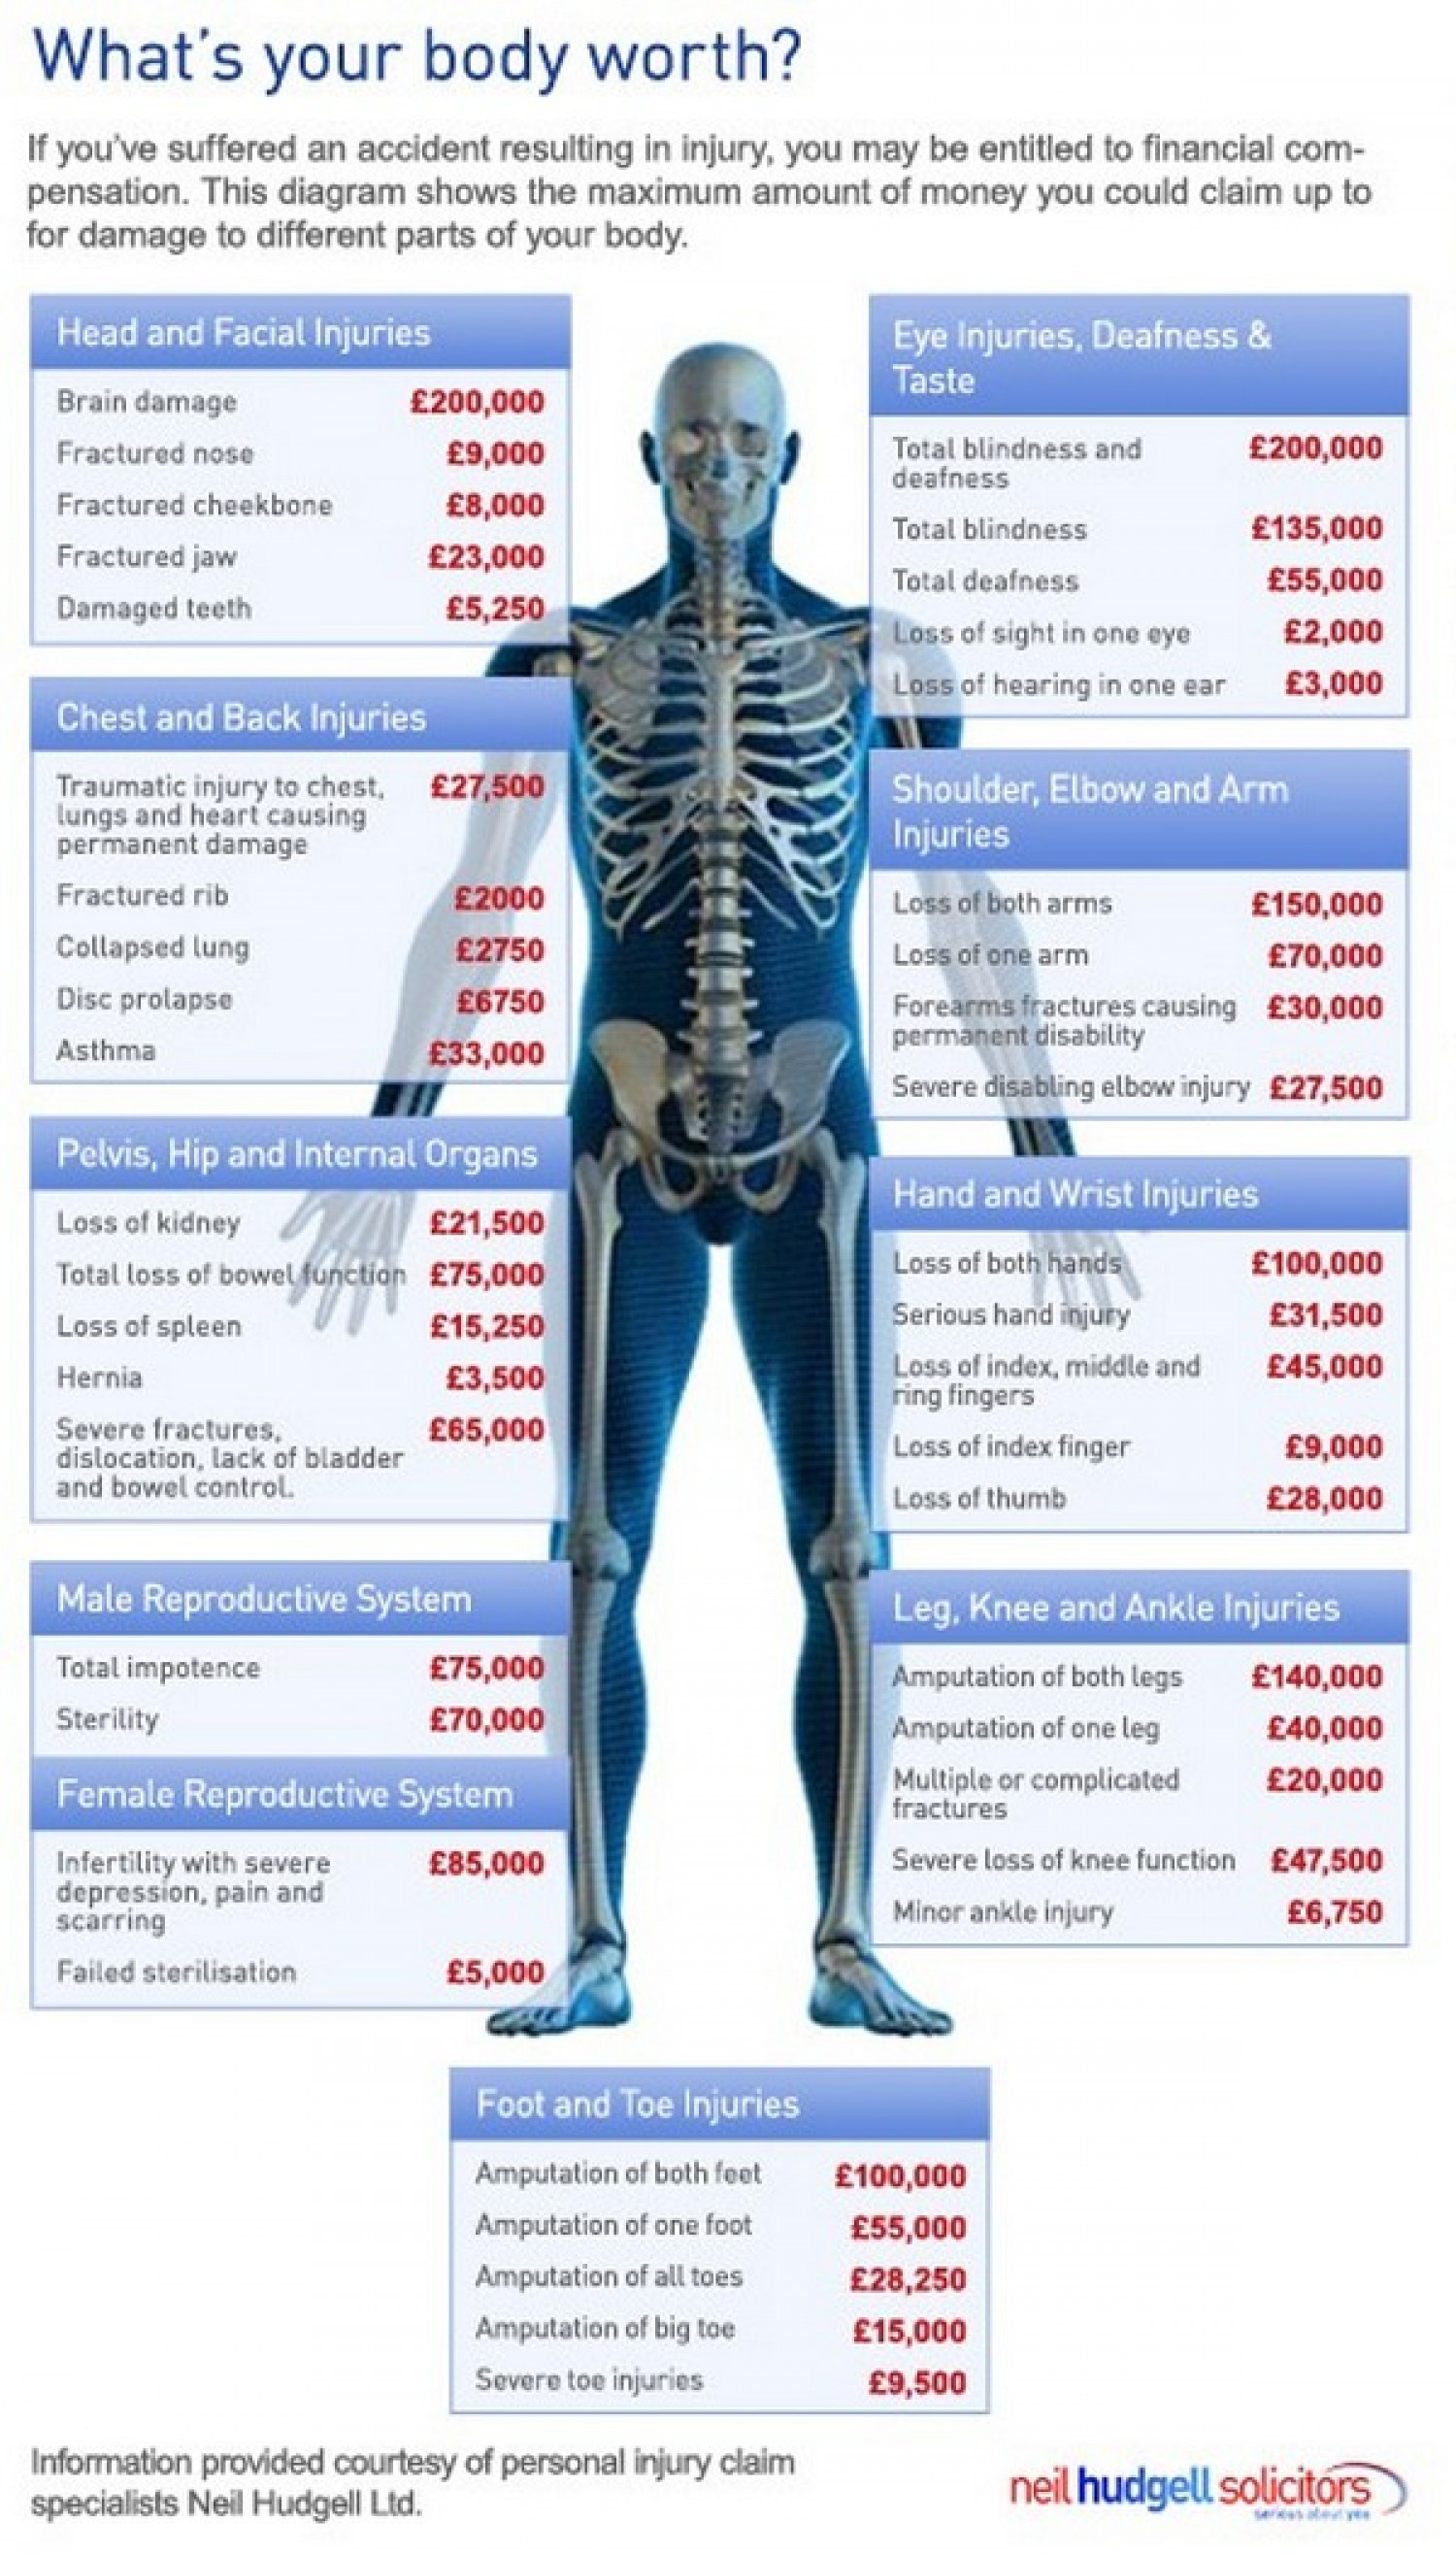 Whats Your Body Worth Visually - How much is the human body worth infographic